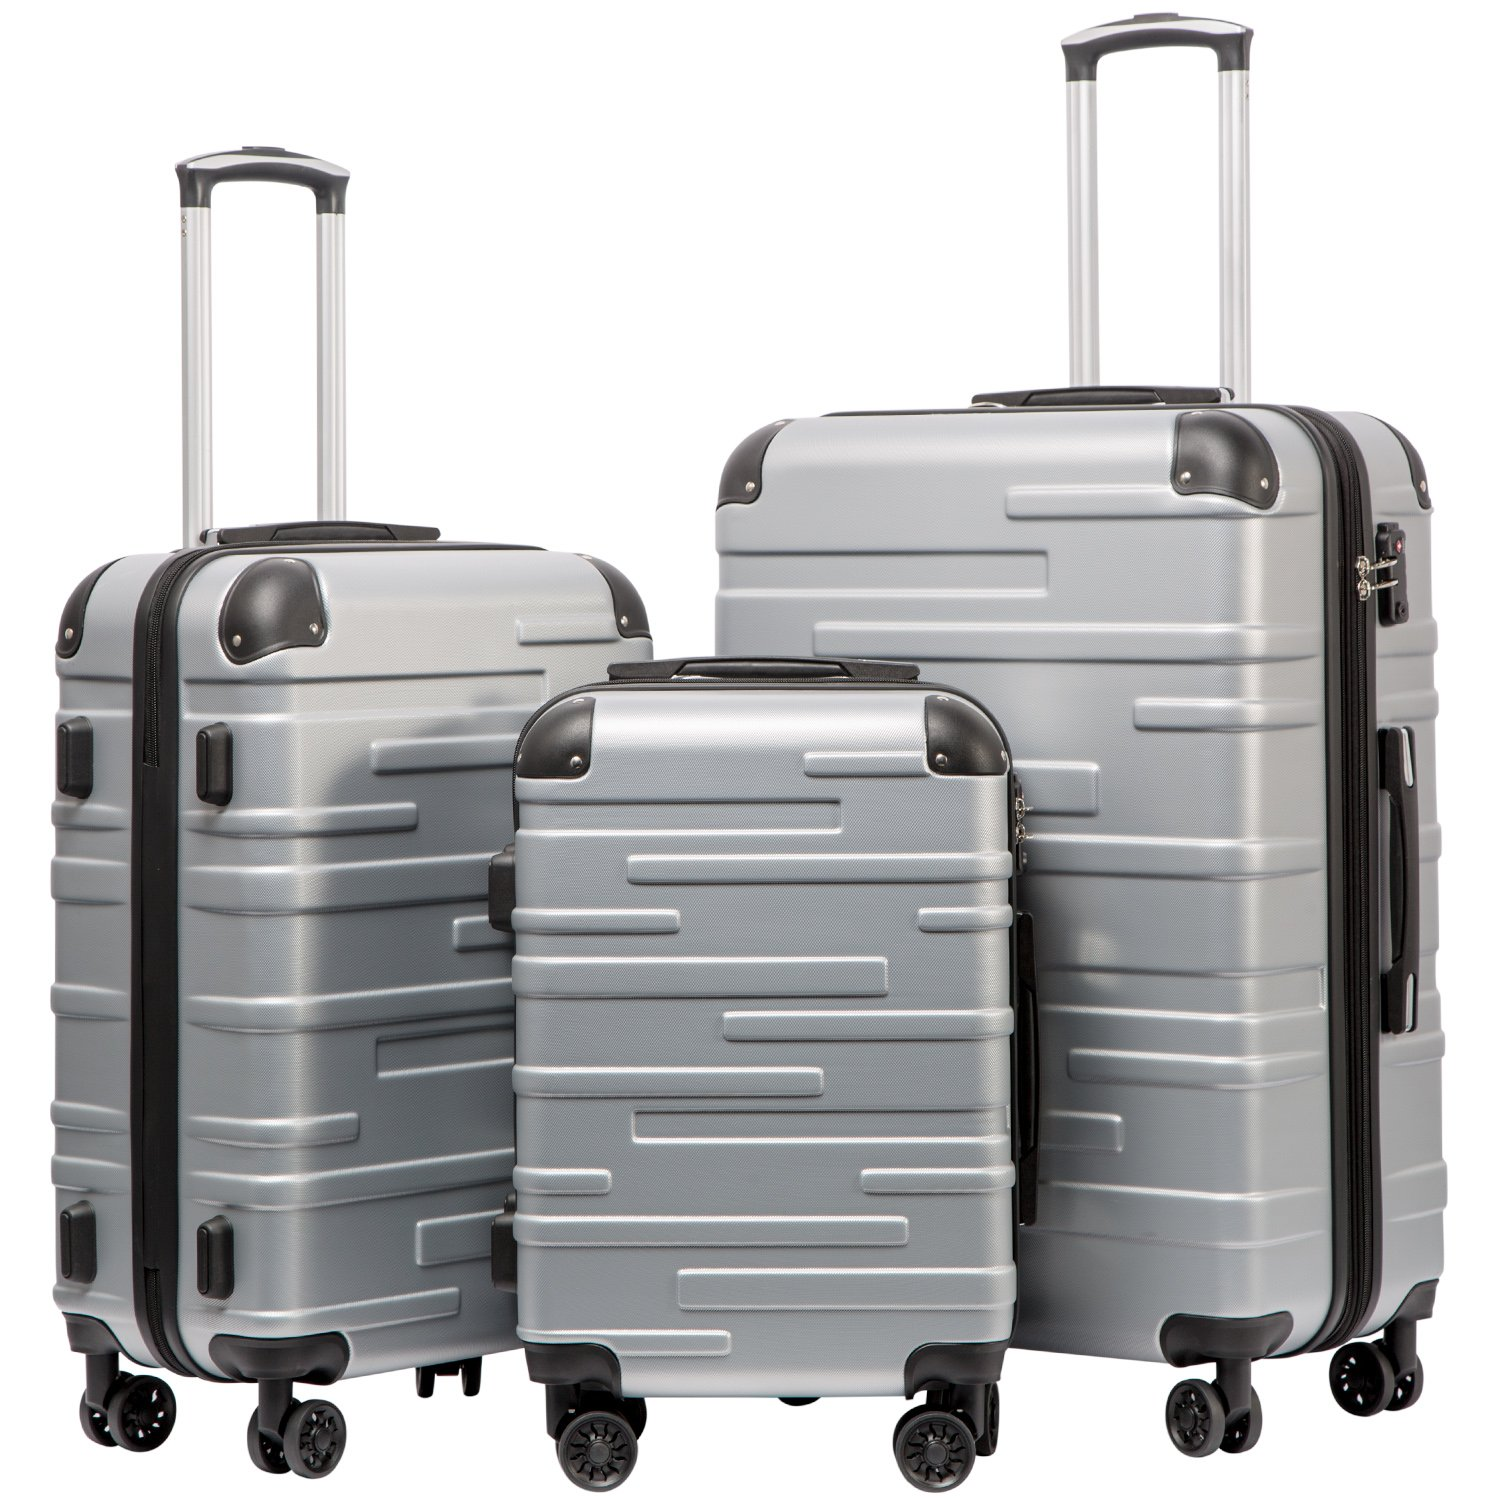 Best Luggage Sets 9